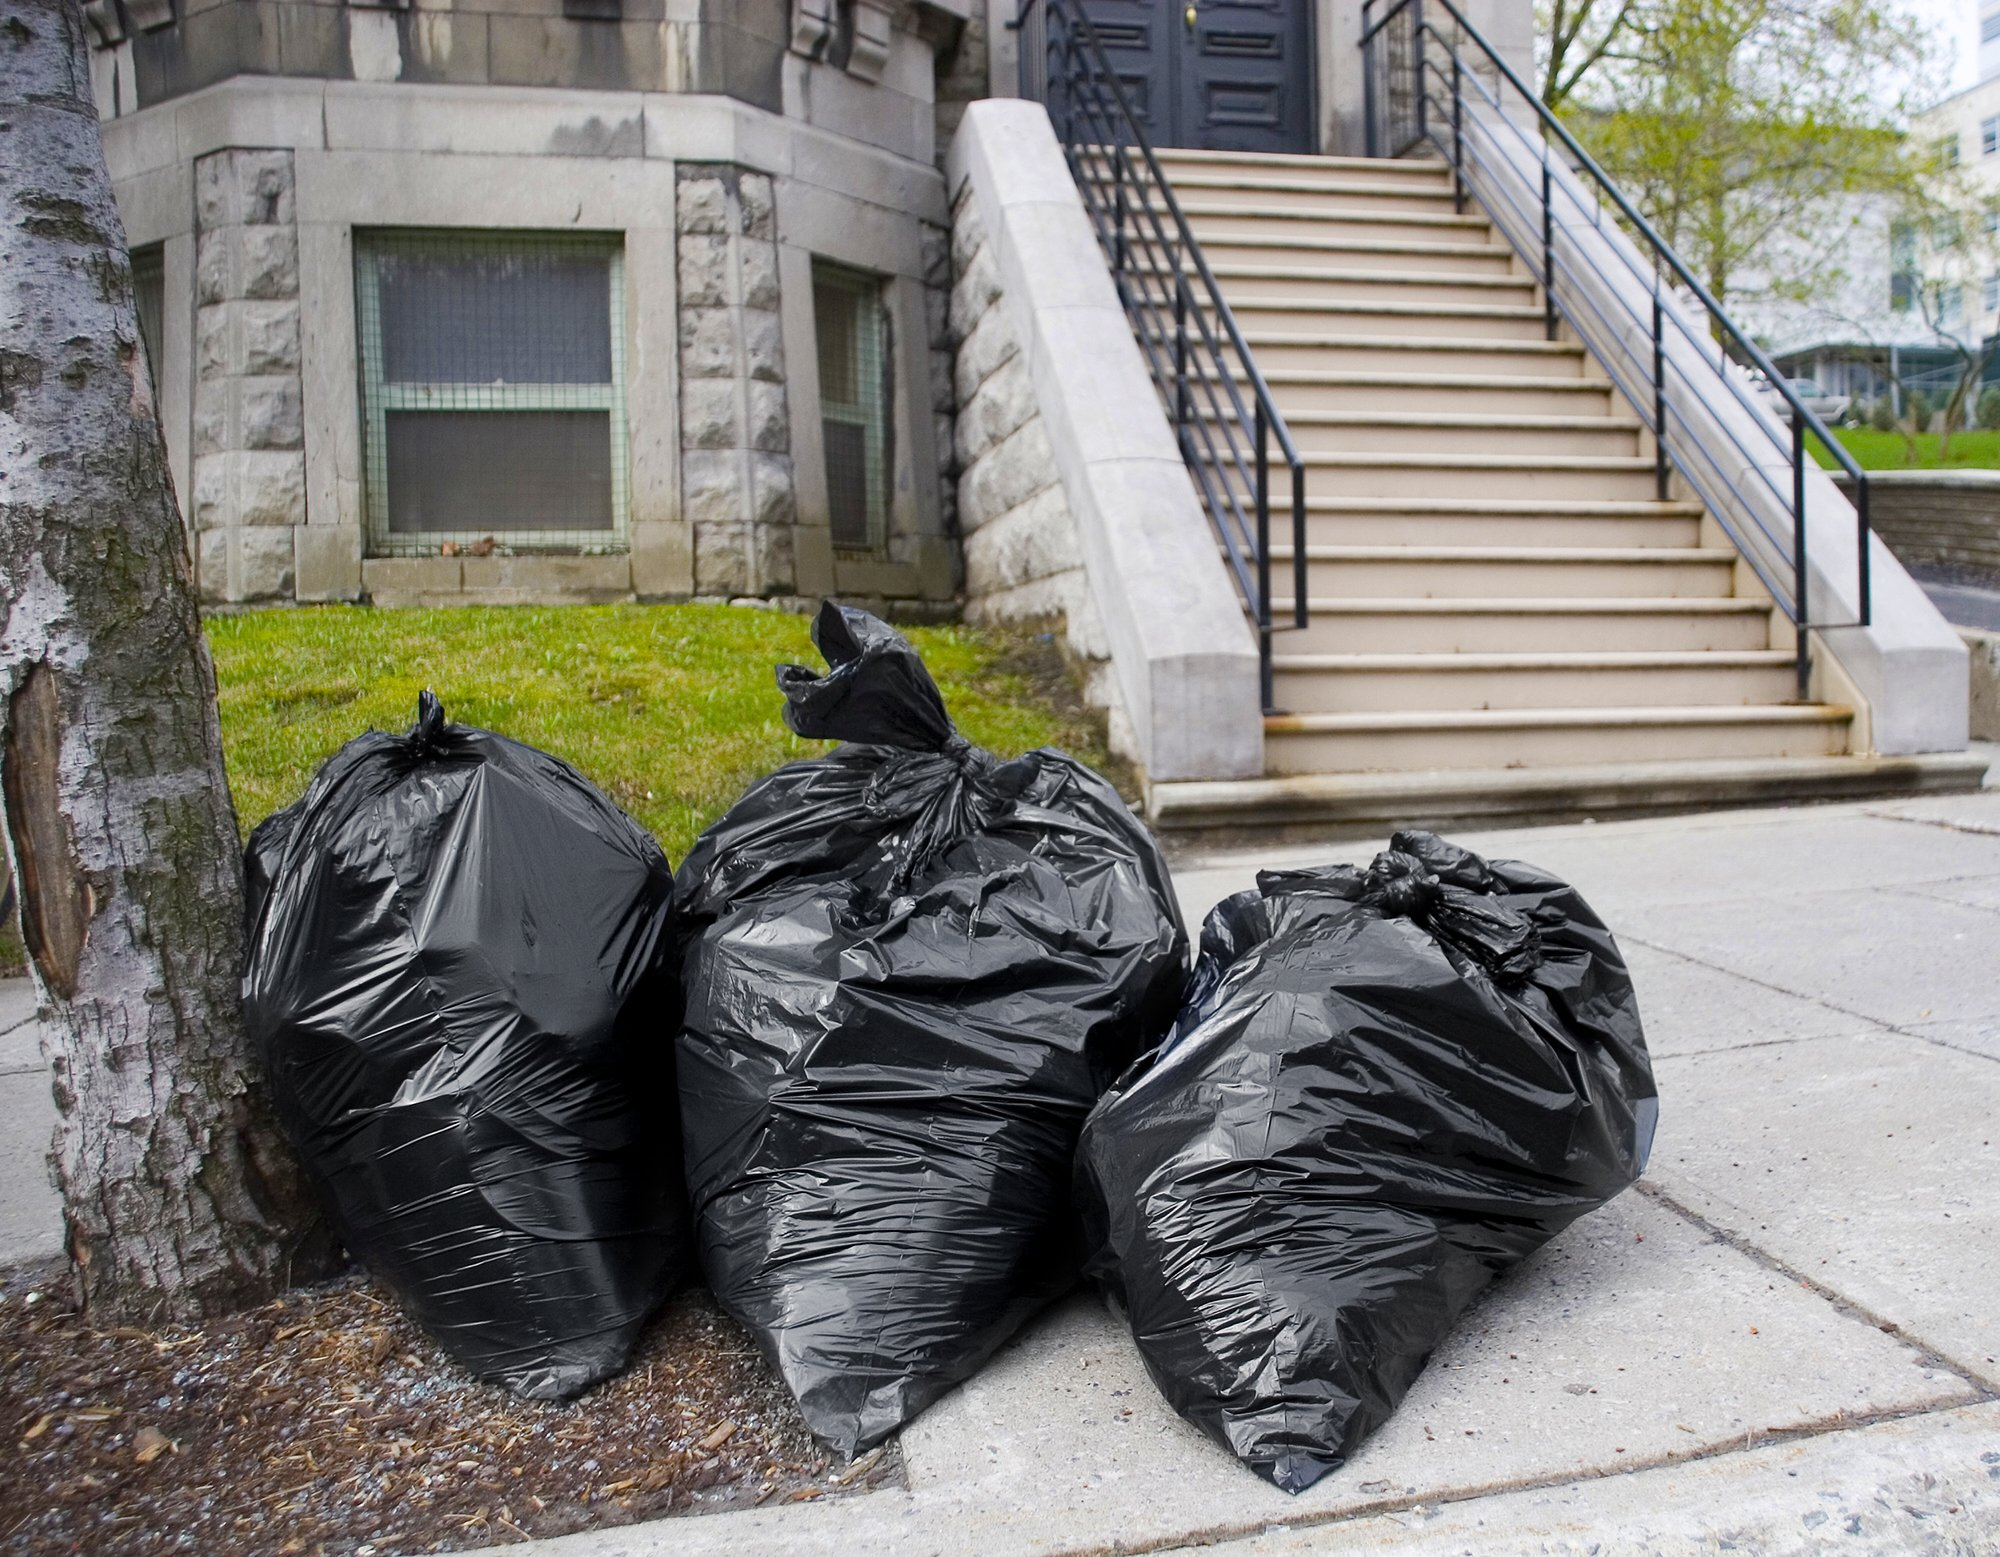 55-60 Gallon Trash Bags, 100/Count, Large Black Garbage Bags, 38'' W x 58'' H, 1.2 Mil by Tasker (Image #4)